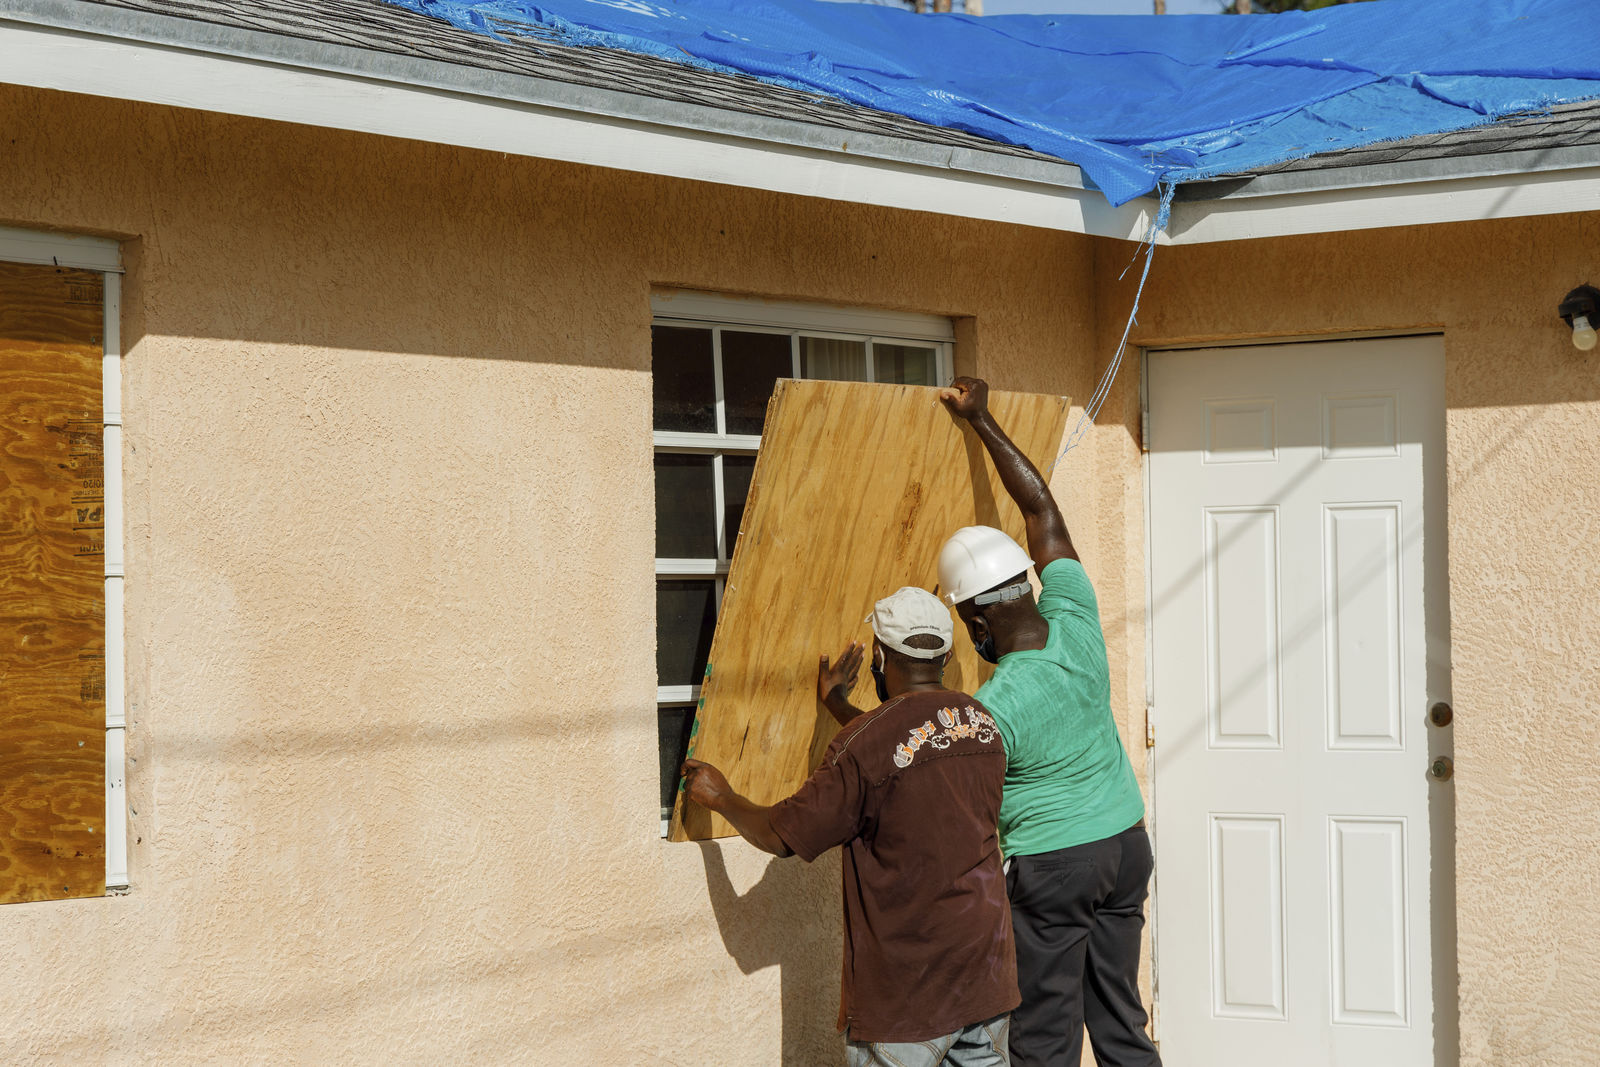 Residents cover a window with plywood in preparation for the arrival of Hurricane Isaias, in the Heritage neighborhood of Freeport, Grand Bahama, Bahamas, Friday, July 31, 2020. (AP Photo/Tim Aylen)